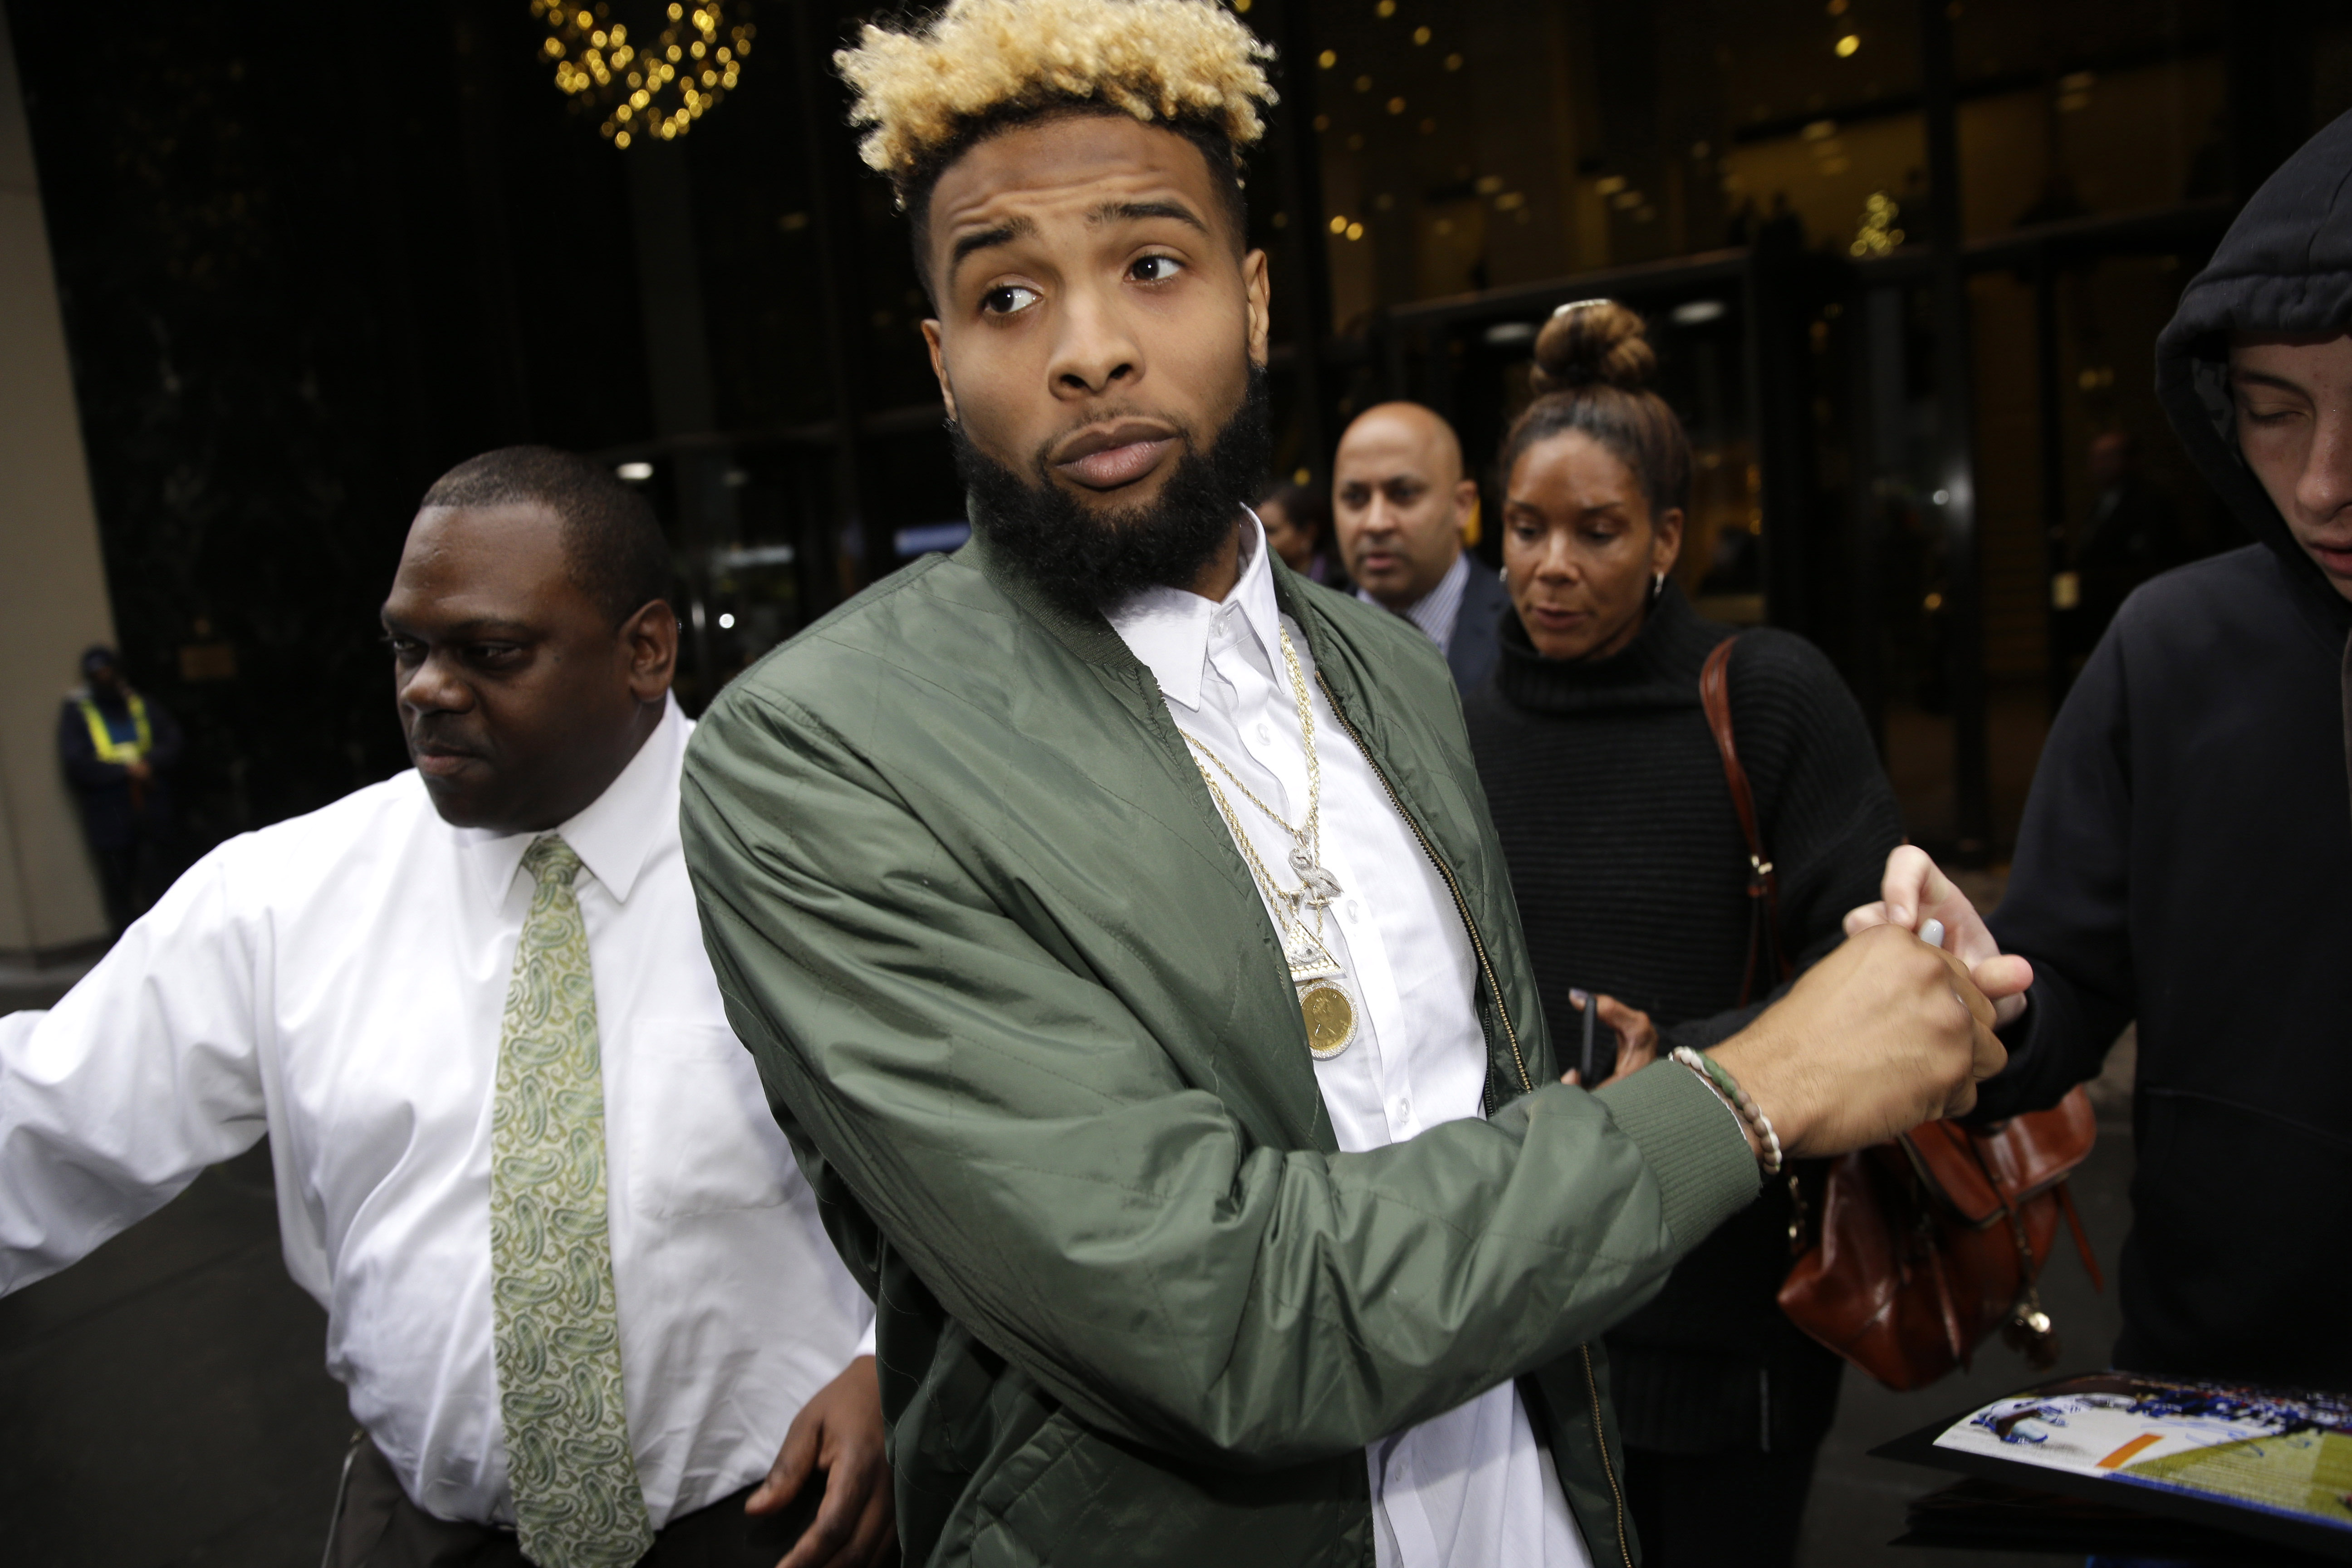 New York Giants' Odell Beckham Jr. leaves NFL headquarters in New York, Wednesday, Dec. 23, 2015. Hearing officer James Thrash upheld the suspension for multiple violations of safety-related playing rules after hearing an appeal by the New York Giants wid